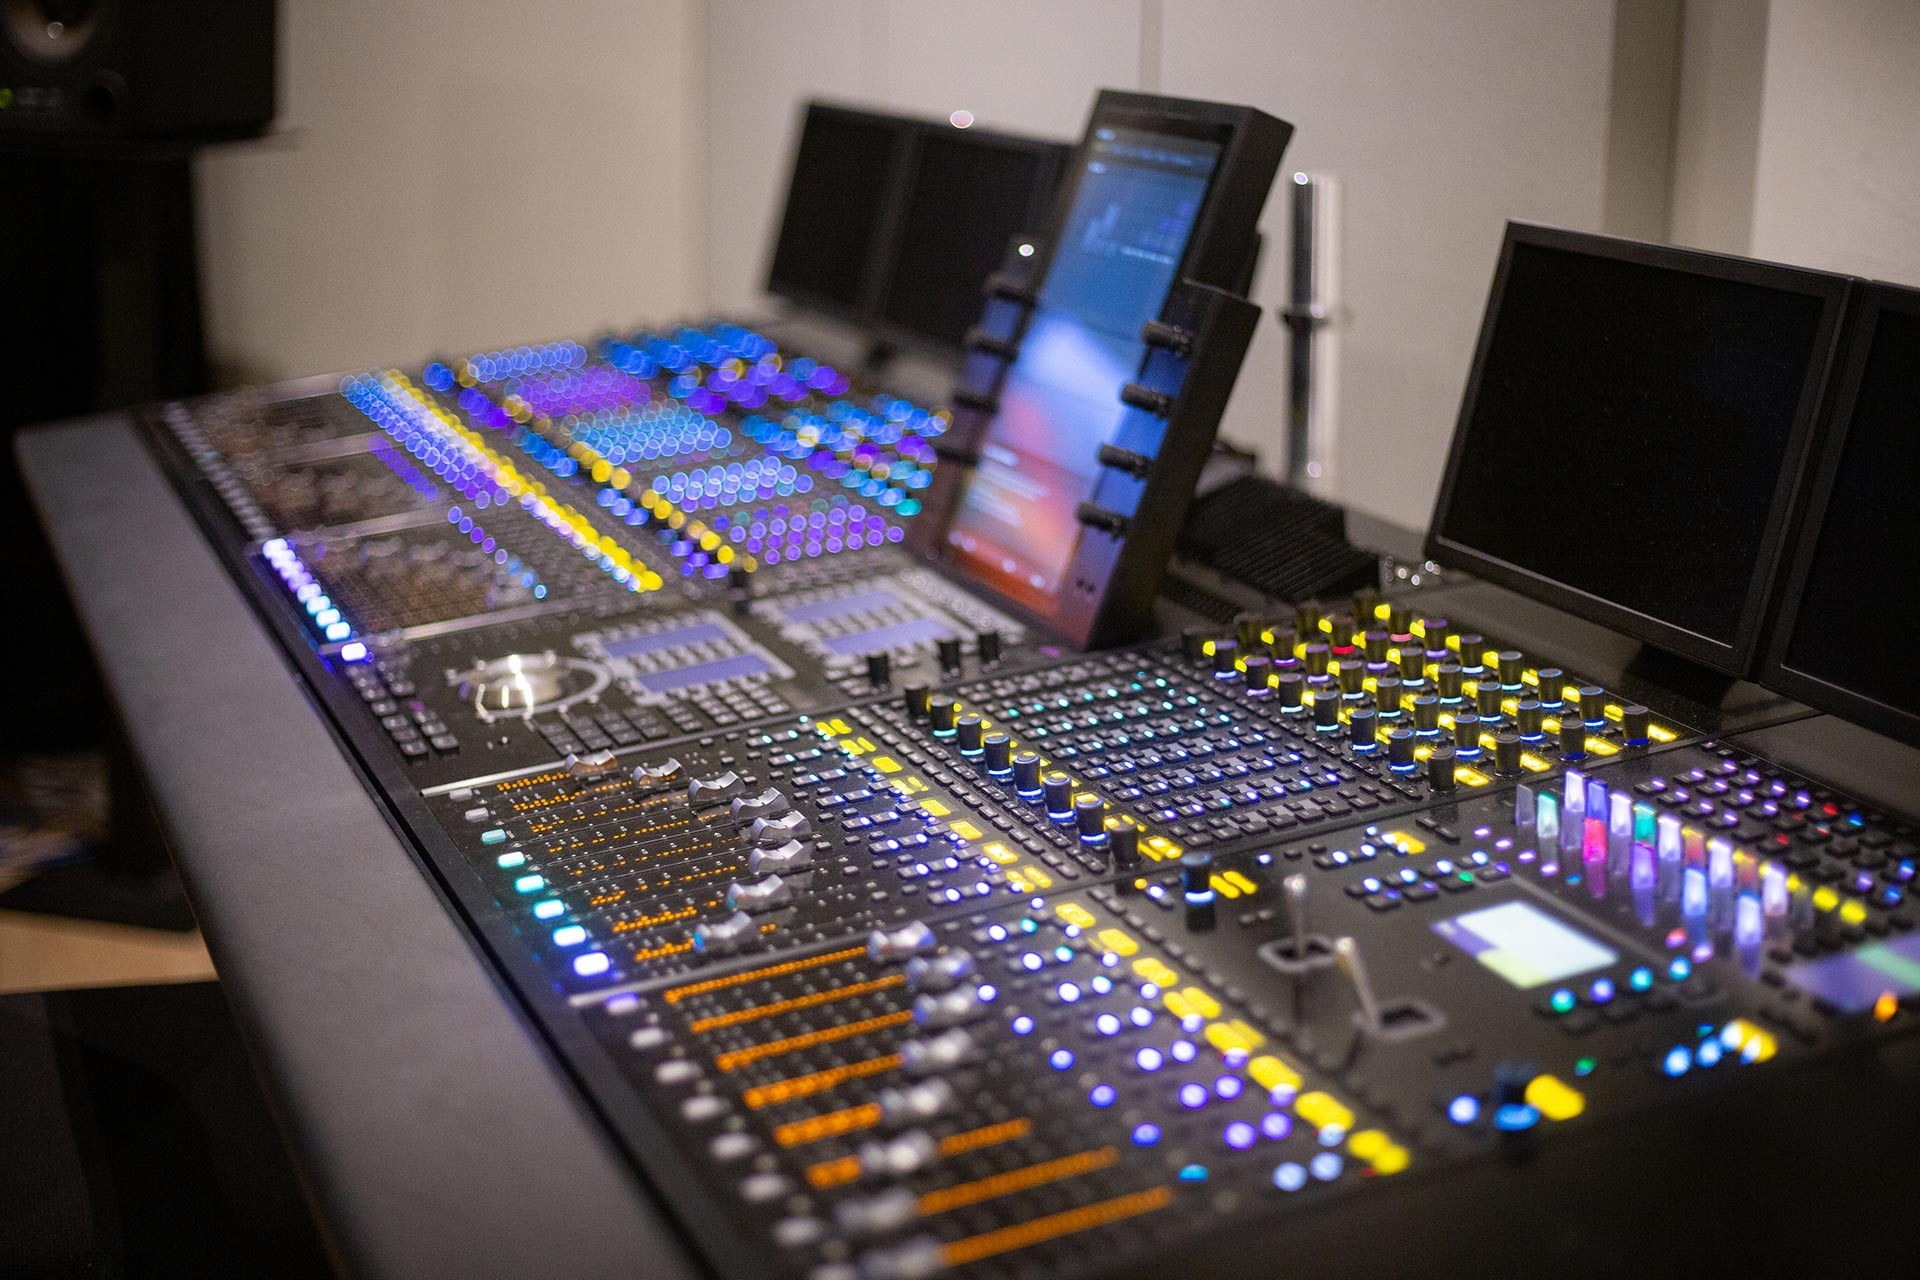 The donated Avid S6 mixer